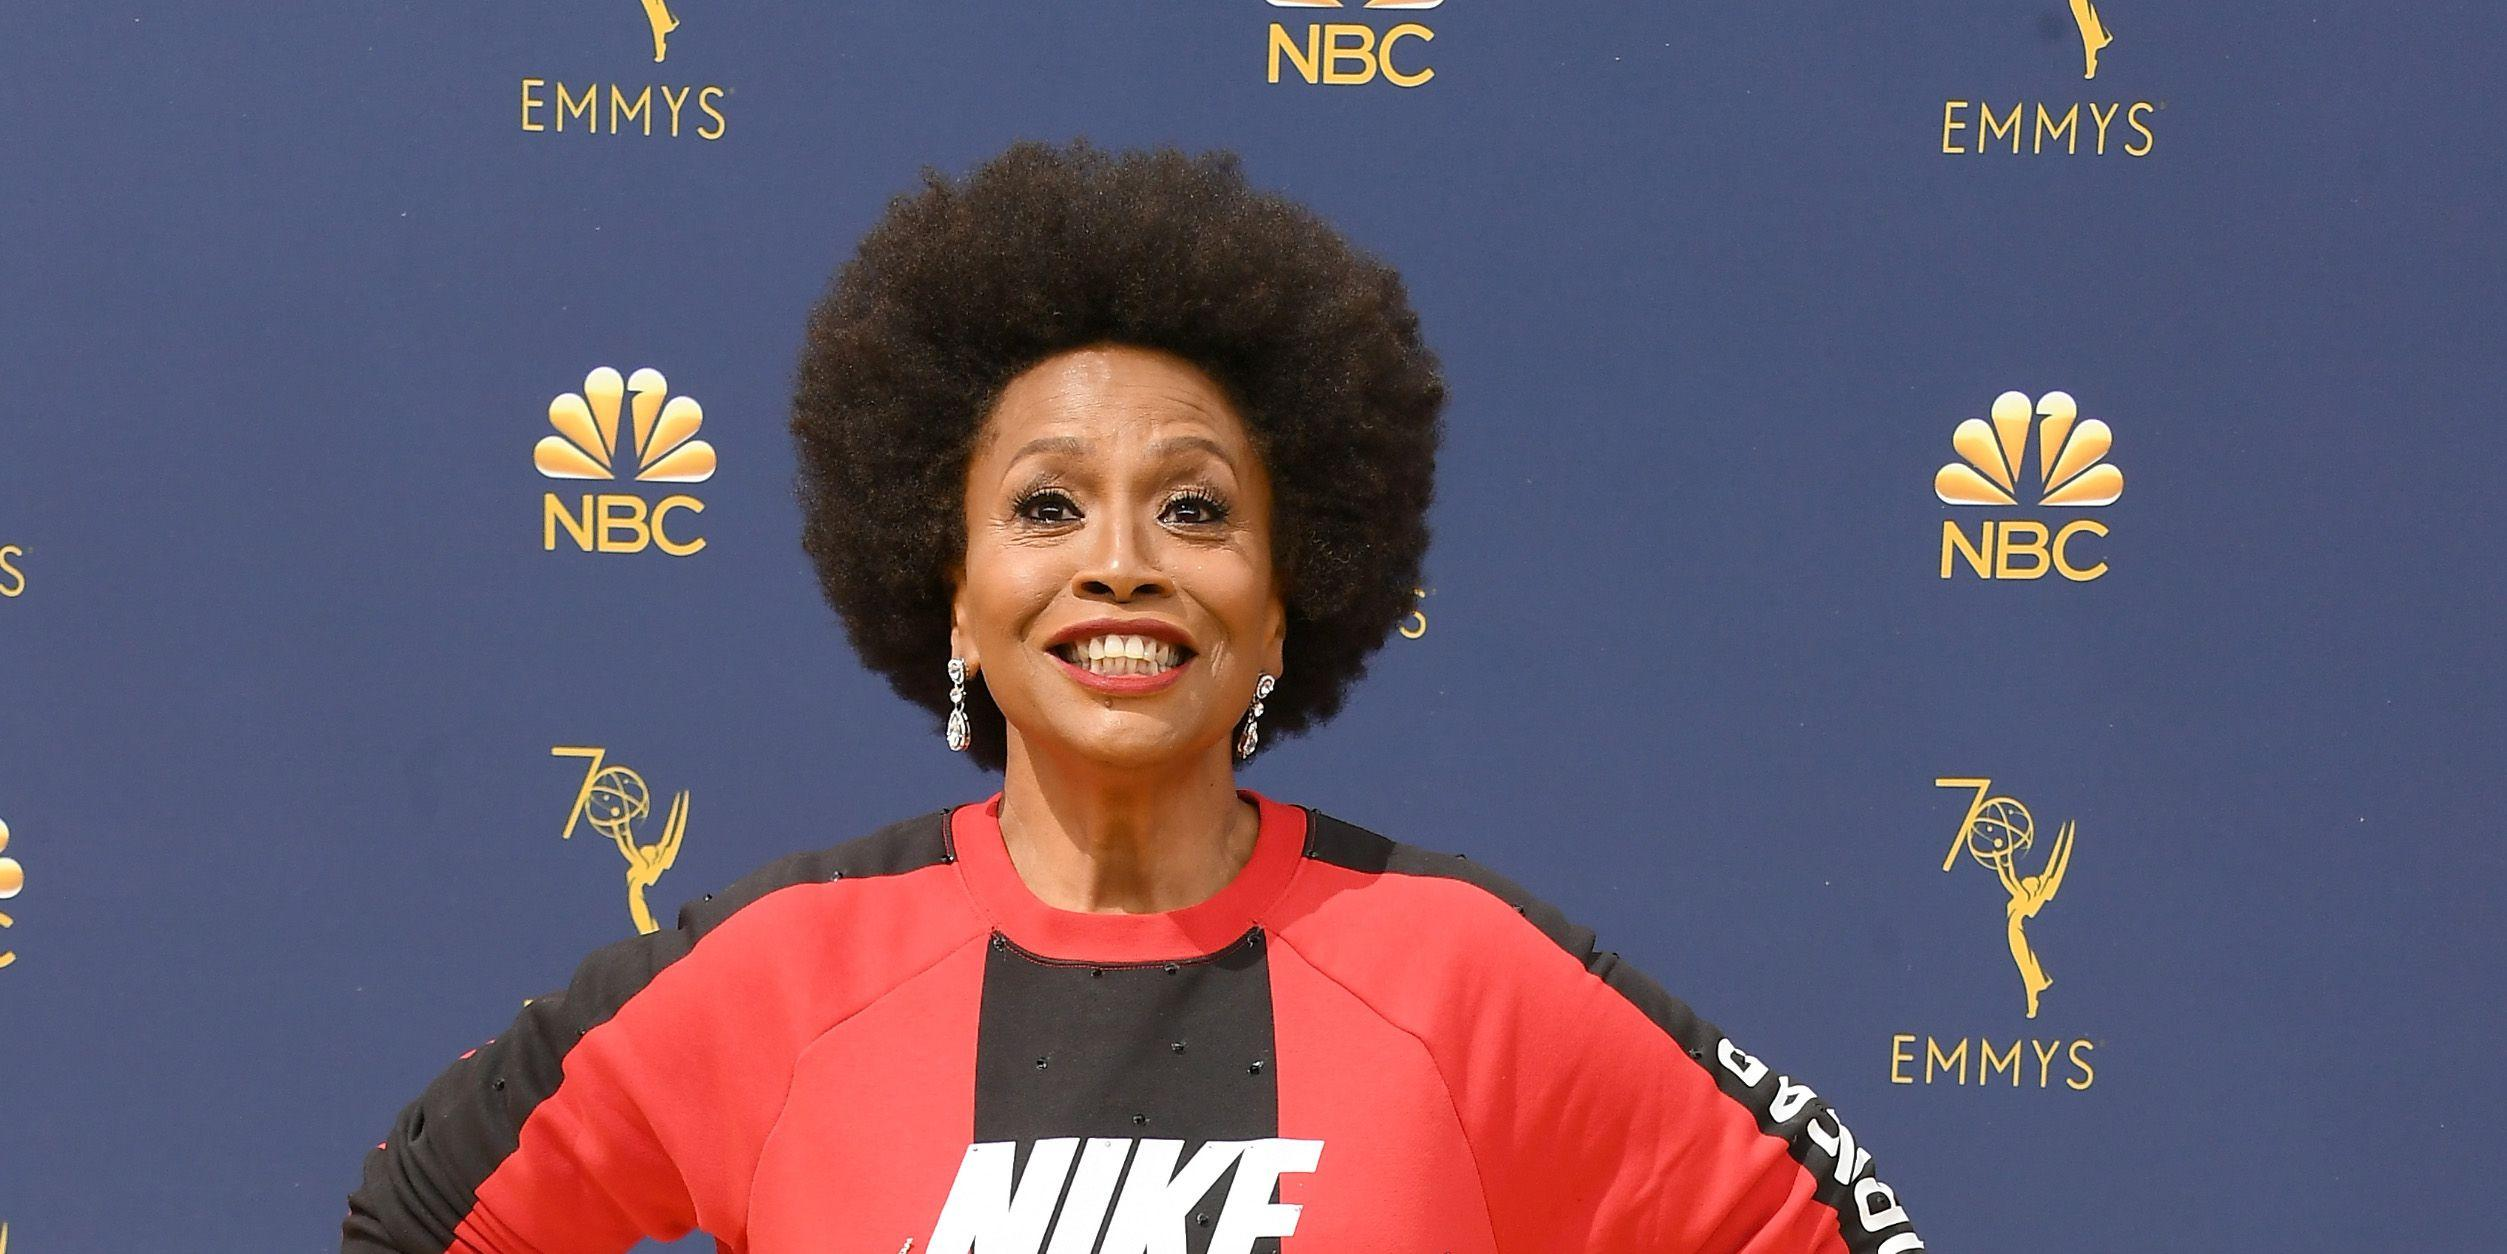 c5e4311ed4ec0 Jennifer Lewis Wears Nike at the 2018 Emmys to Show Her Support For Colin  Kaepernick